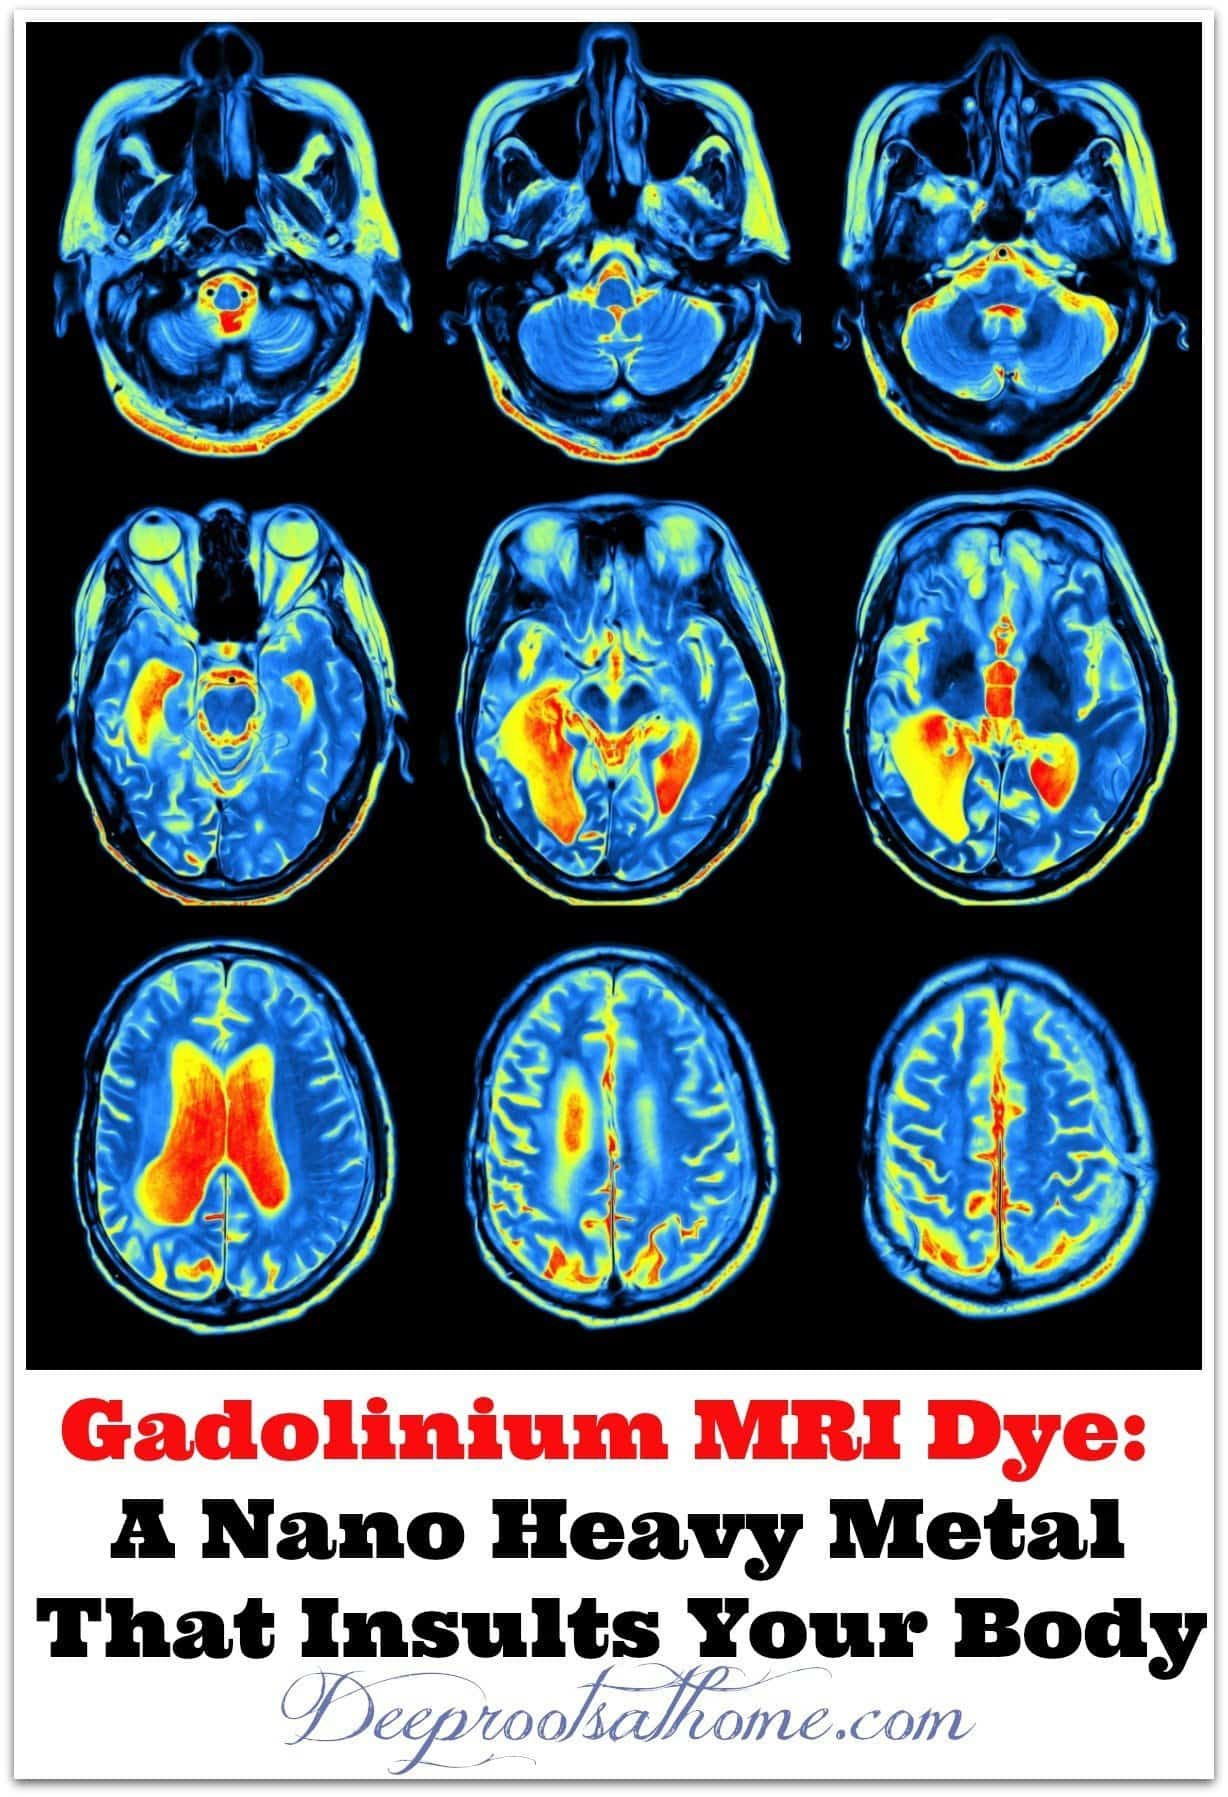 Gadolinium MRI Dye: A Nano Heavy Metal That Insults Your Body, contrast dye in a brain